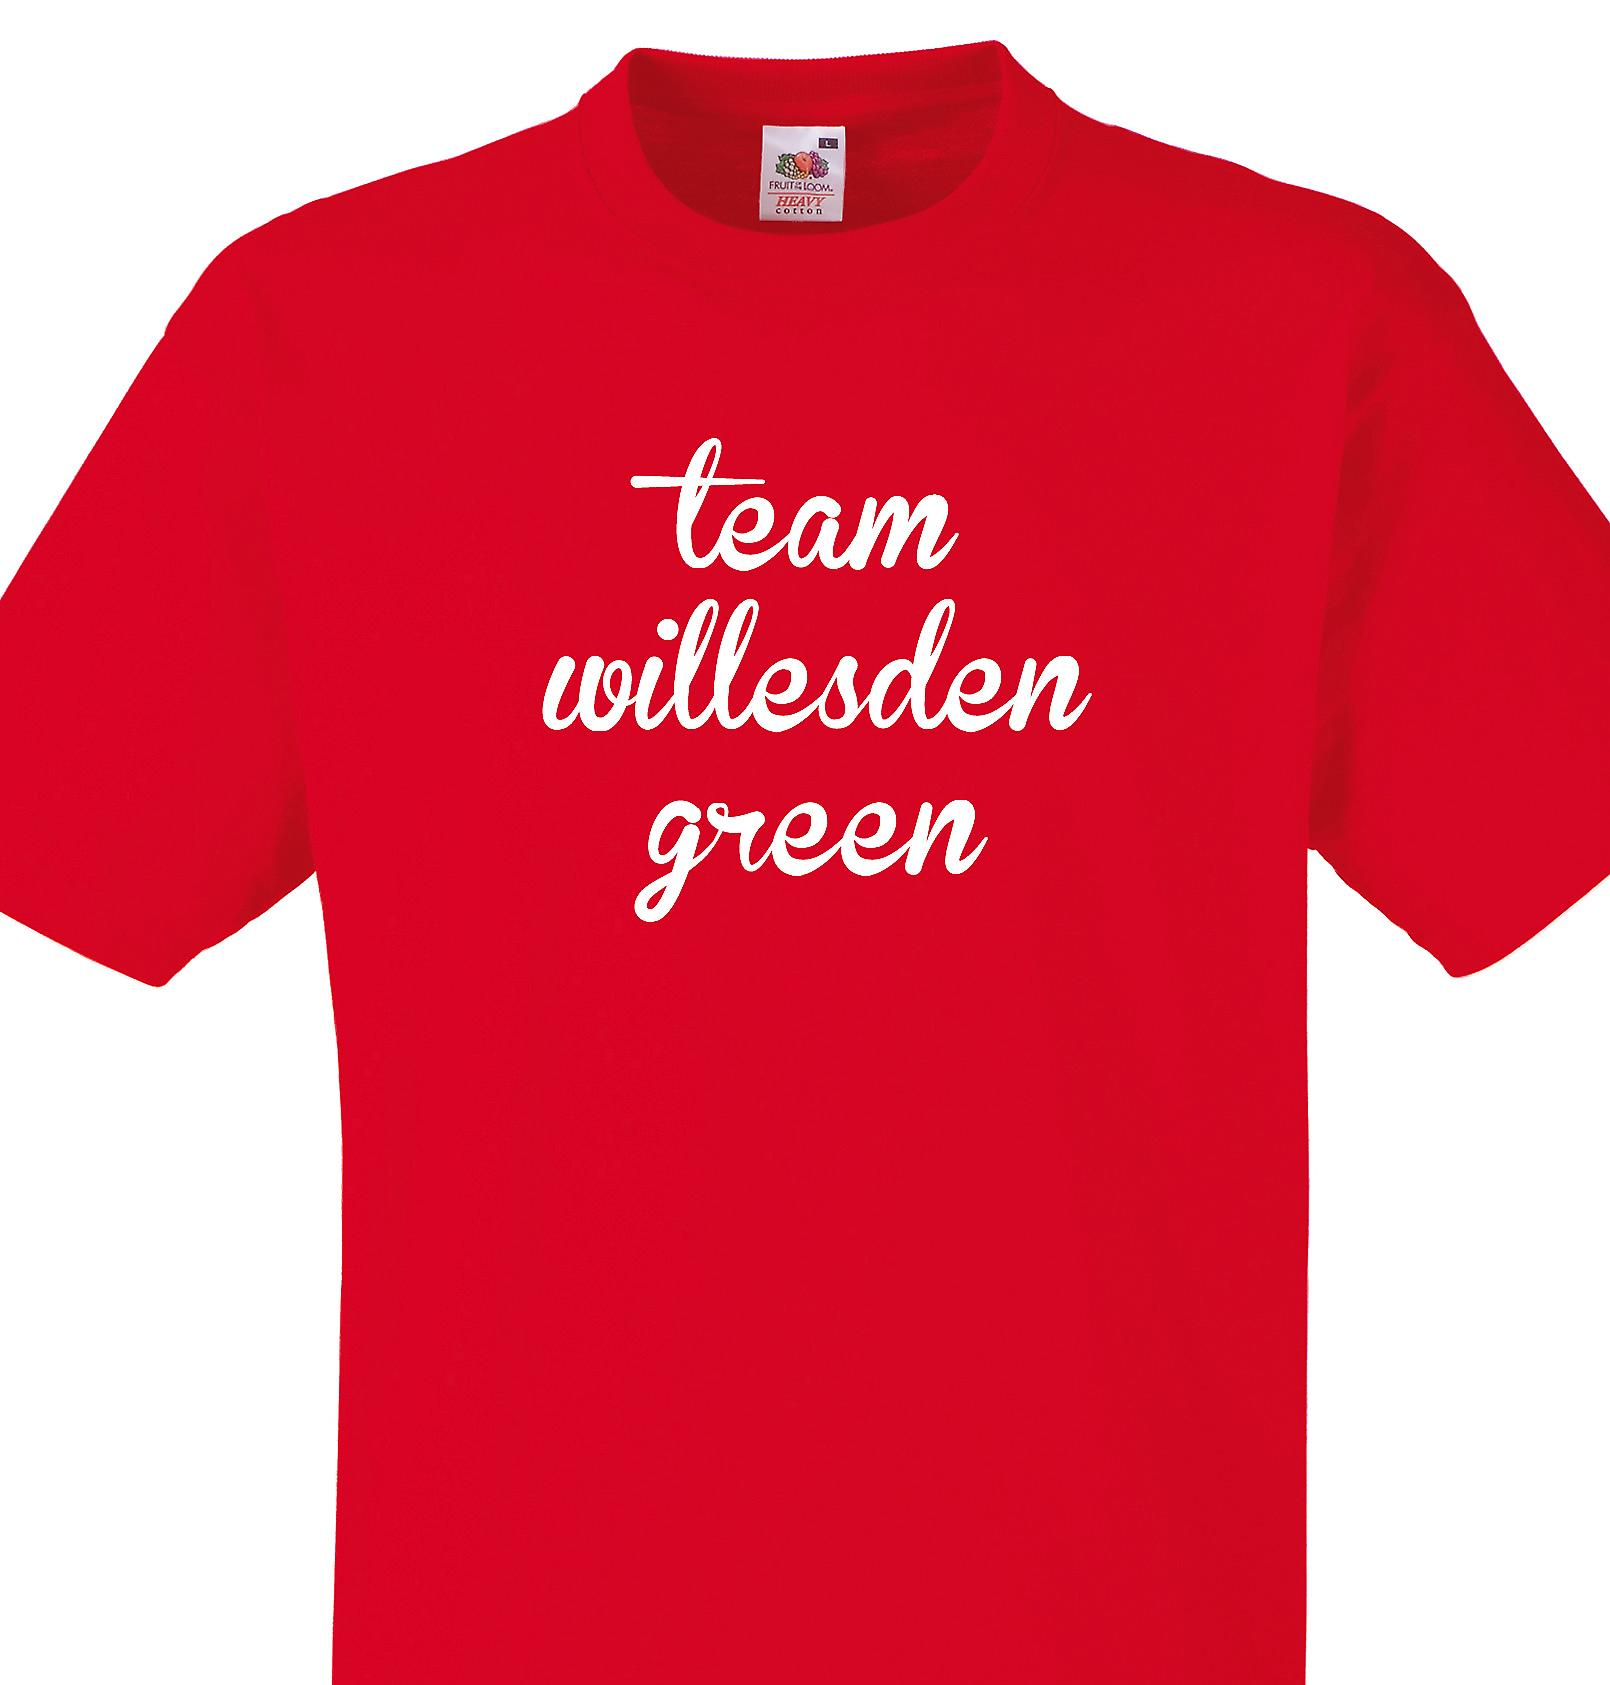 Team Willesden green Red T shirt